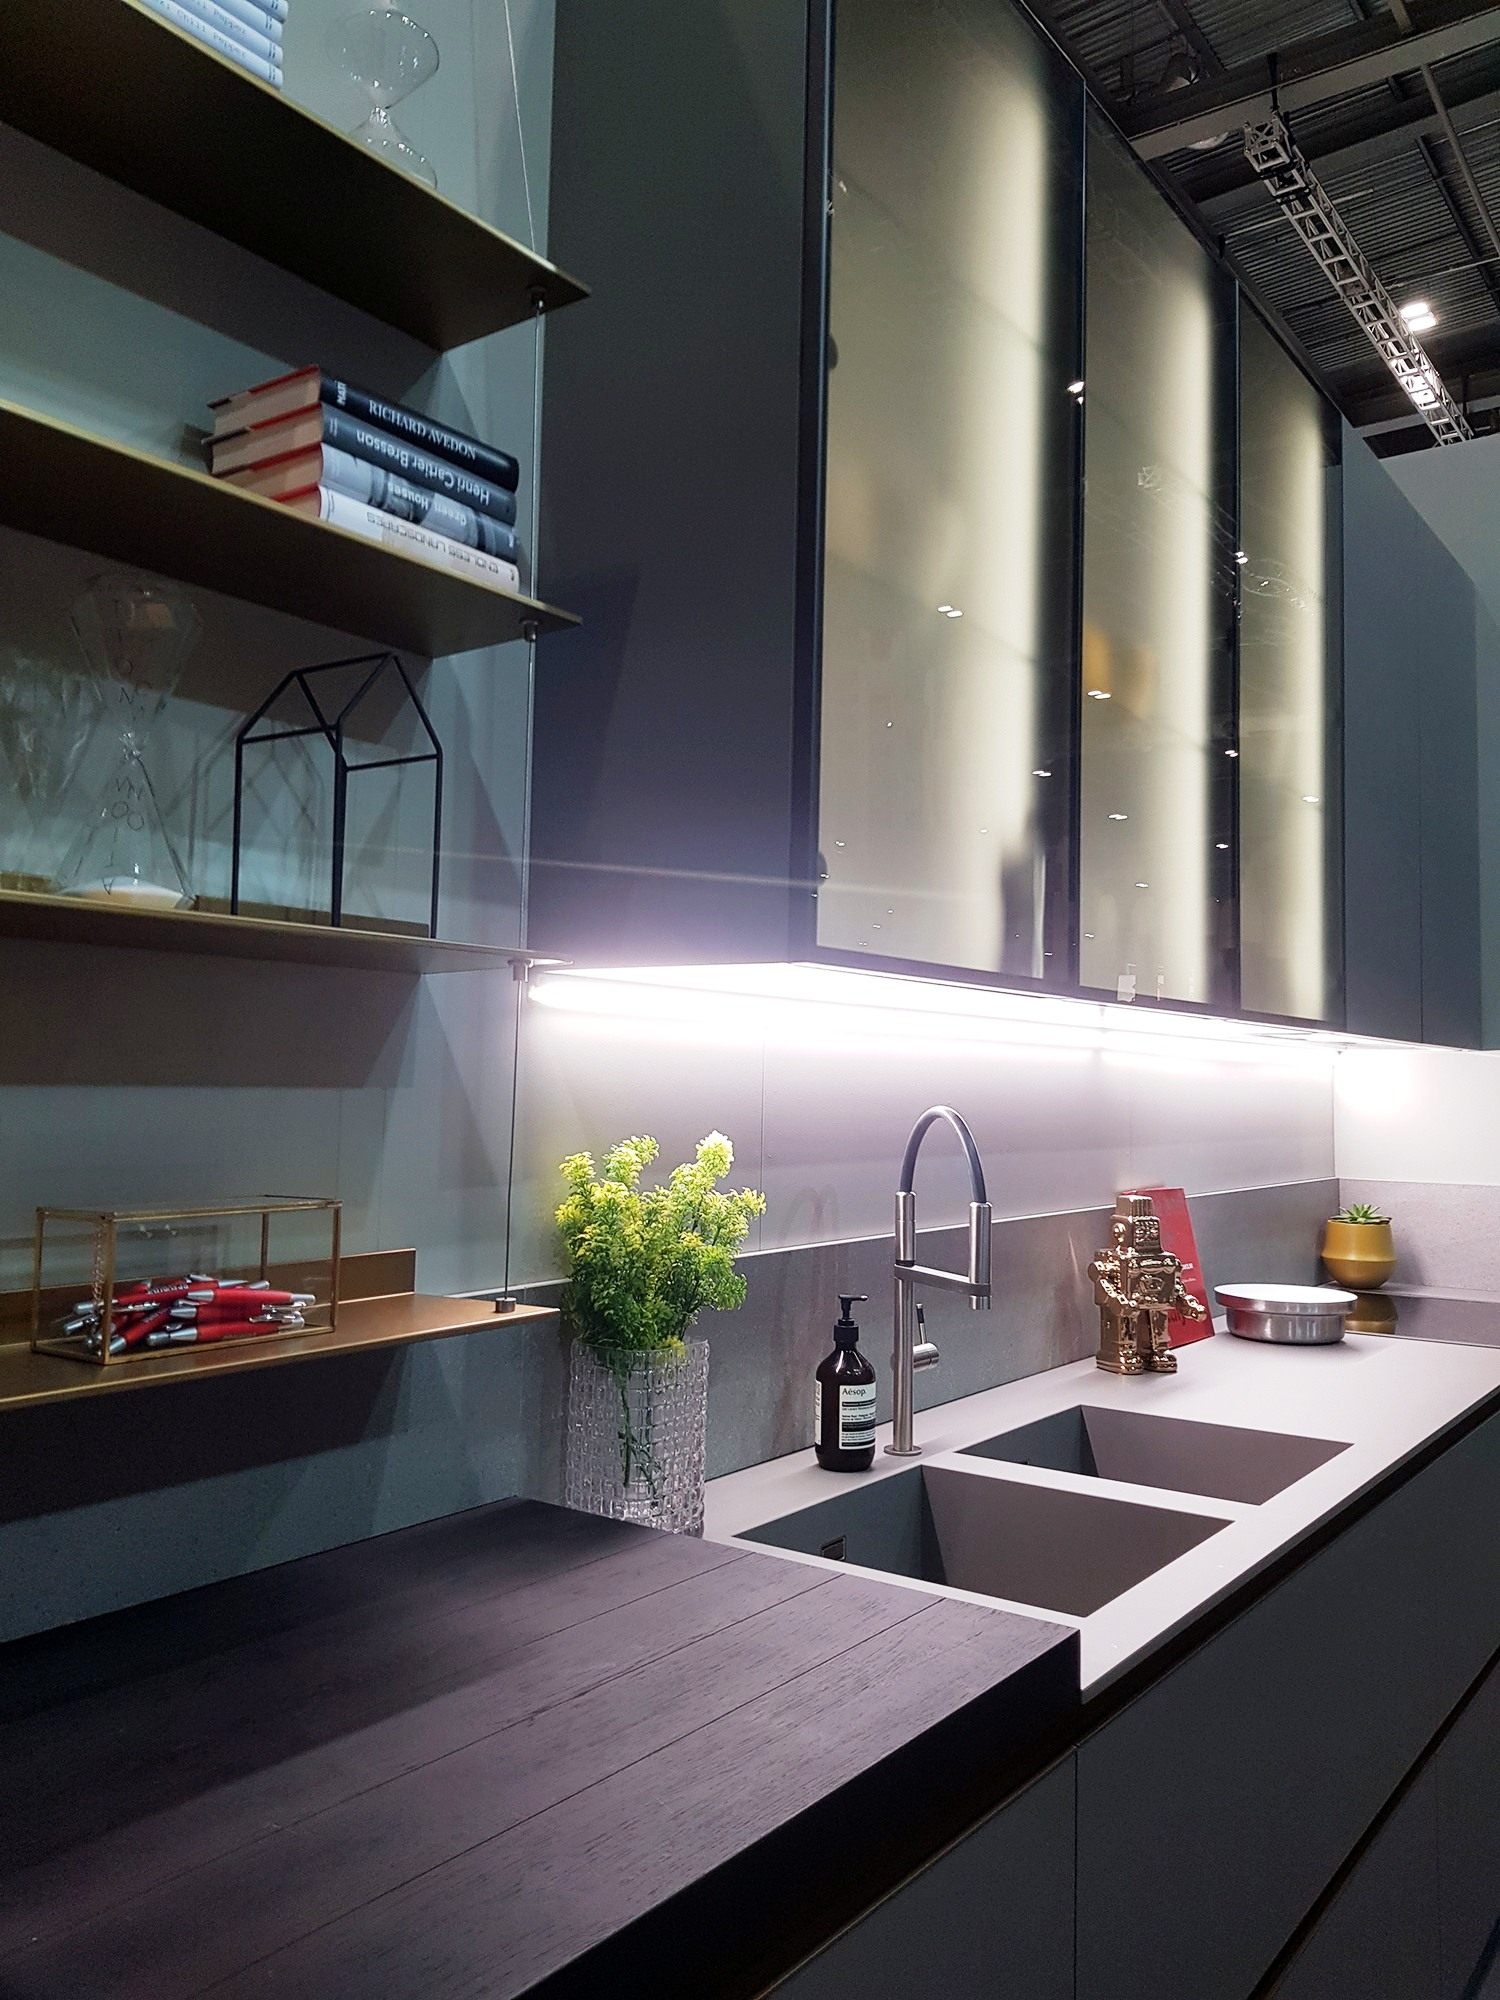 Grand Kitchens & Bathrooms - Grand Designs Live London - Scavolini Kitchens